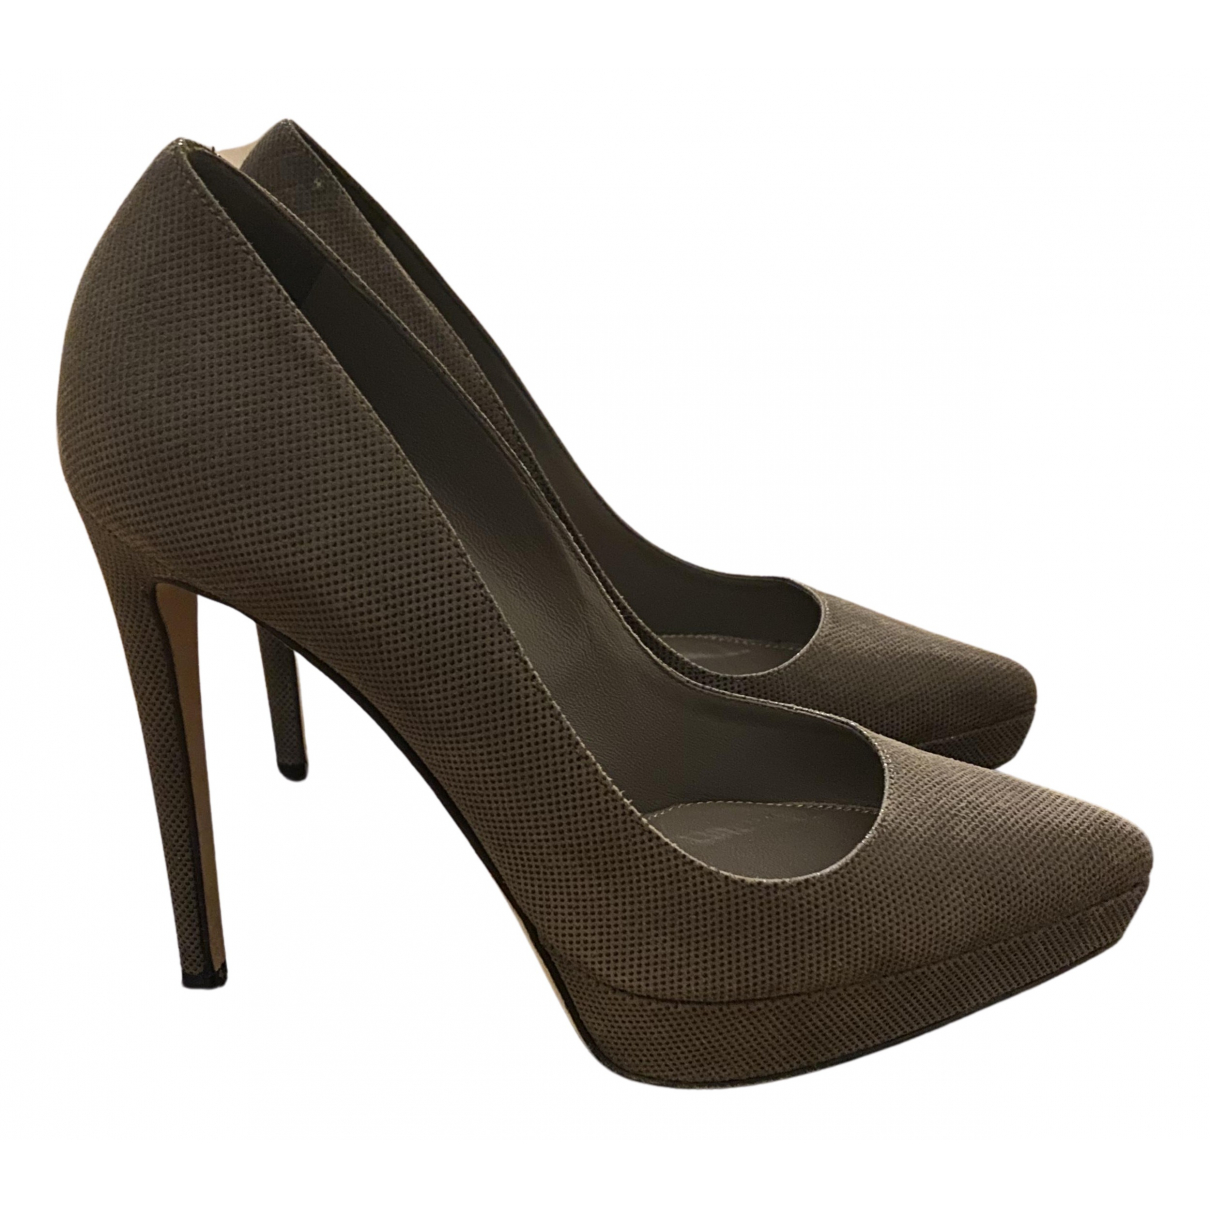 Sergio Rossi N Anthracite Leather Heels for Women 36 EU